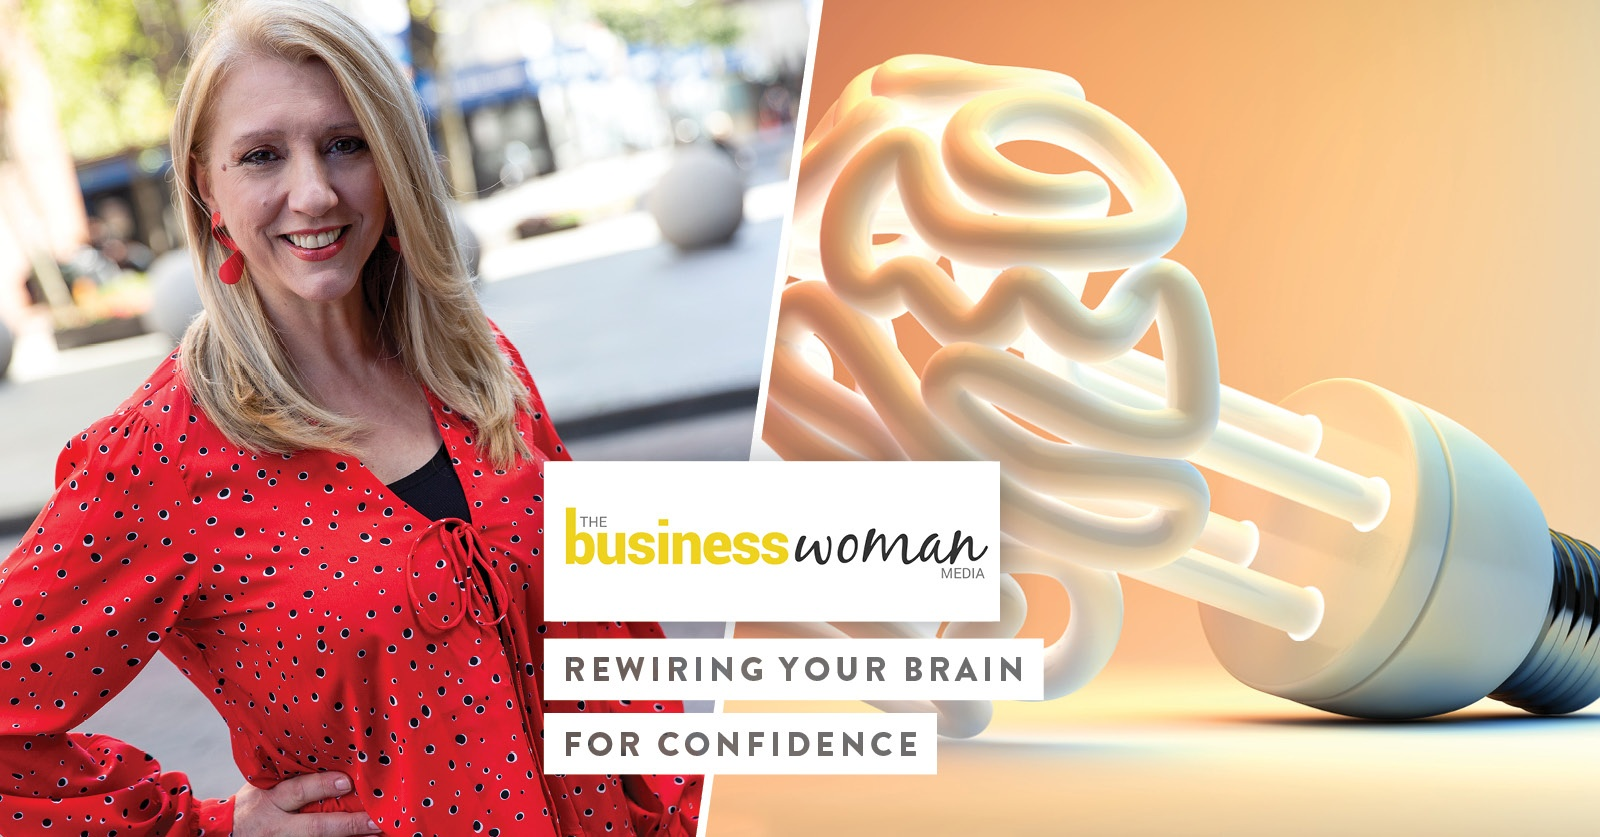 business-woman-media-rewiring-your-brain-for-confidence